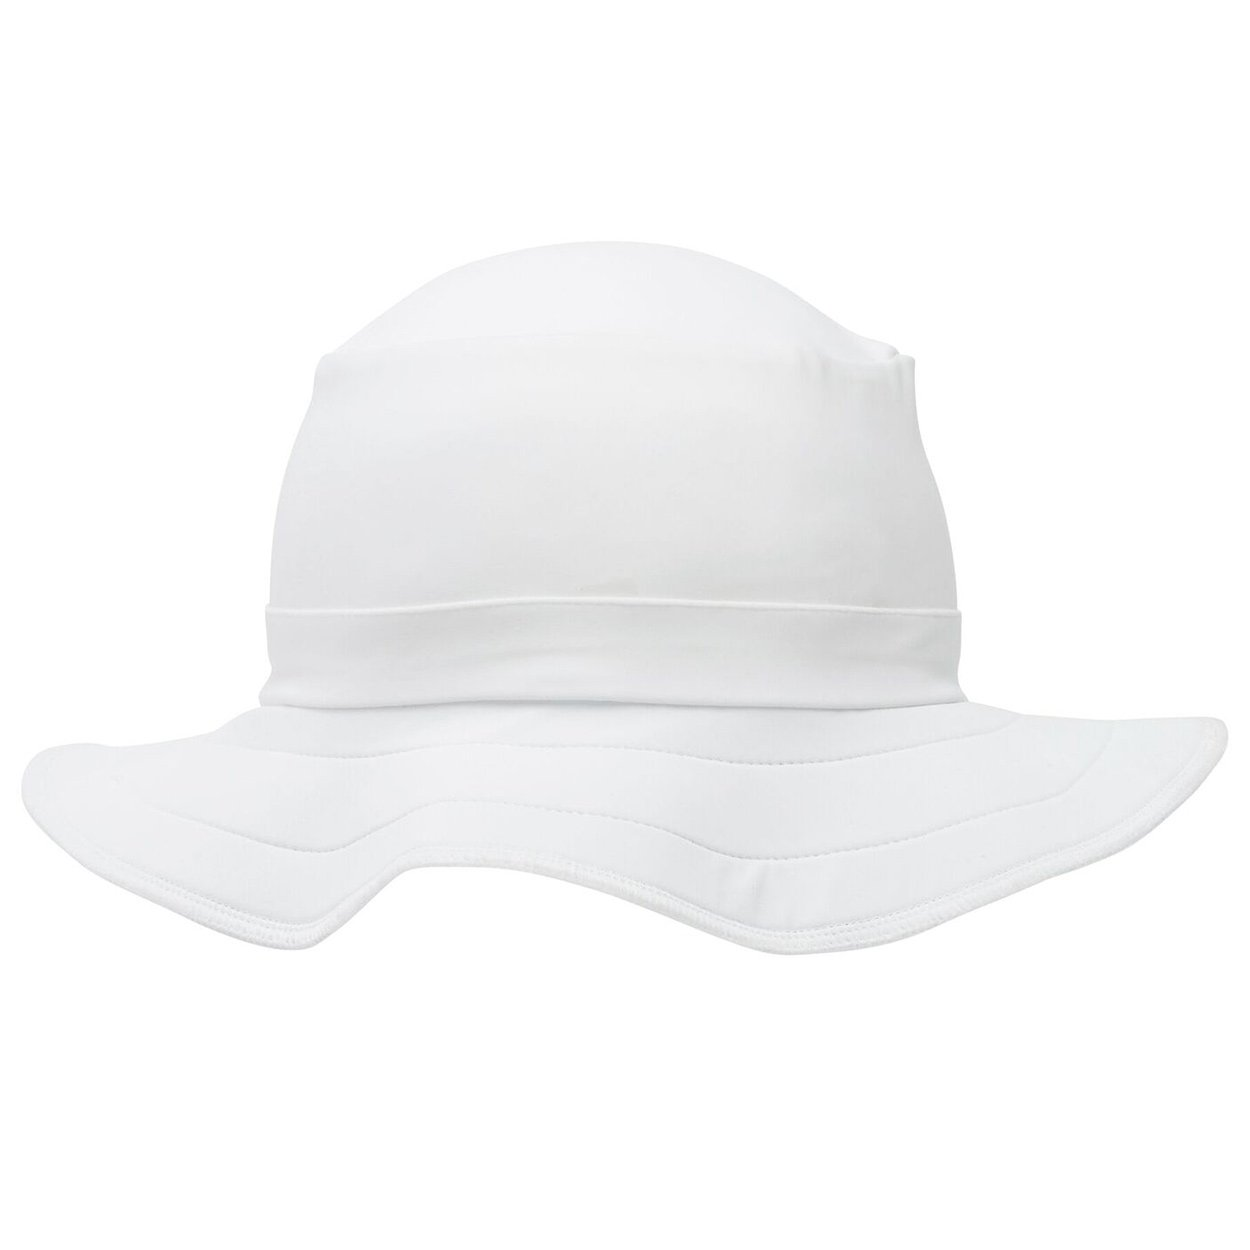 c92a905d196075 White Funky Bucket Hat Upf 50+